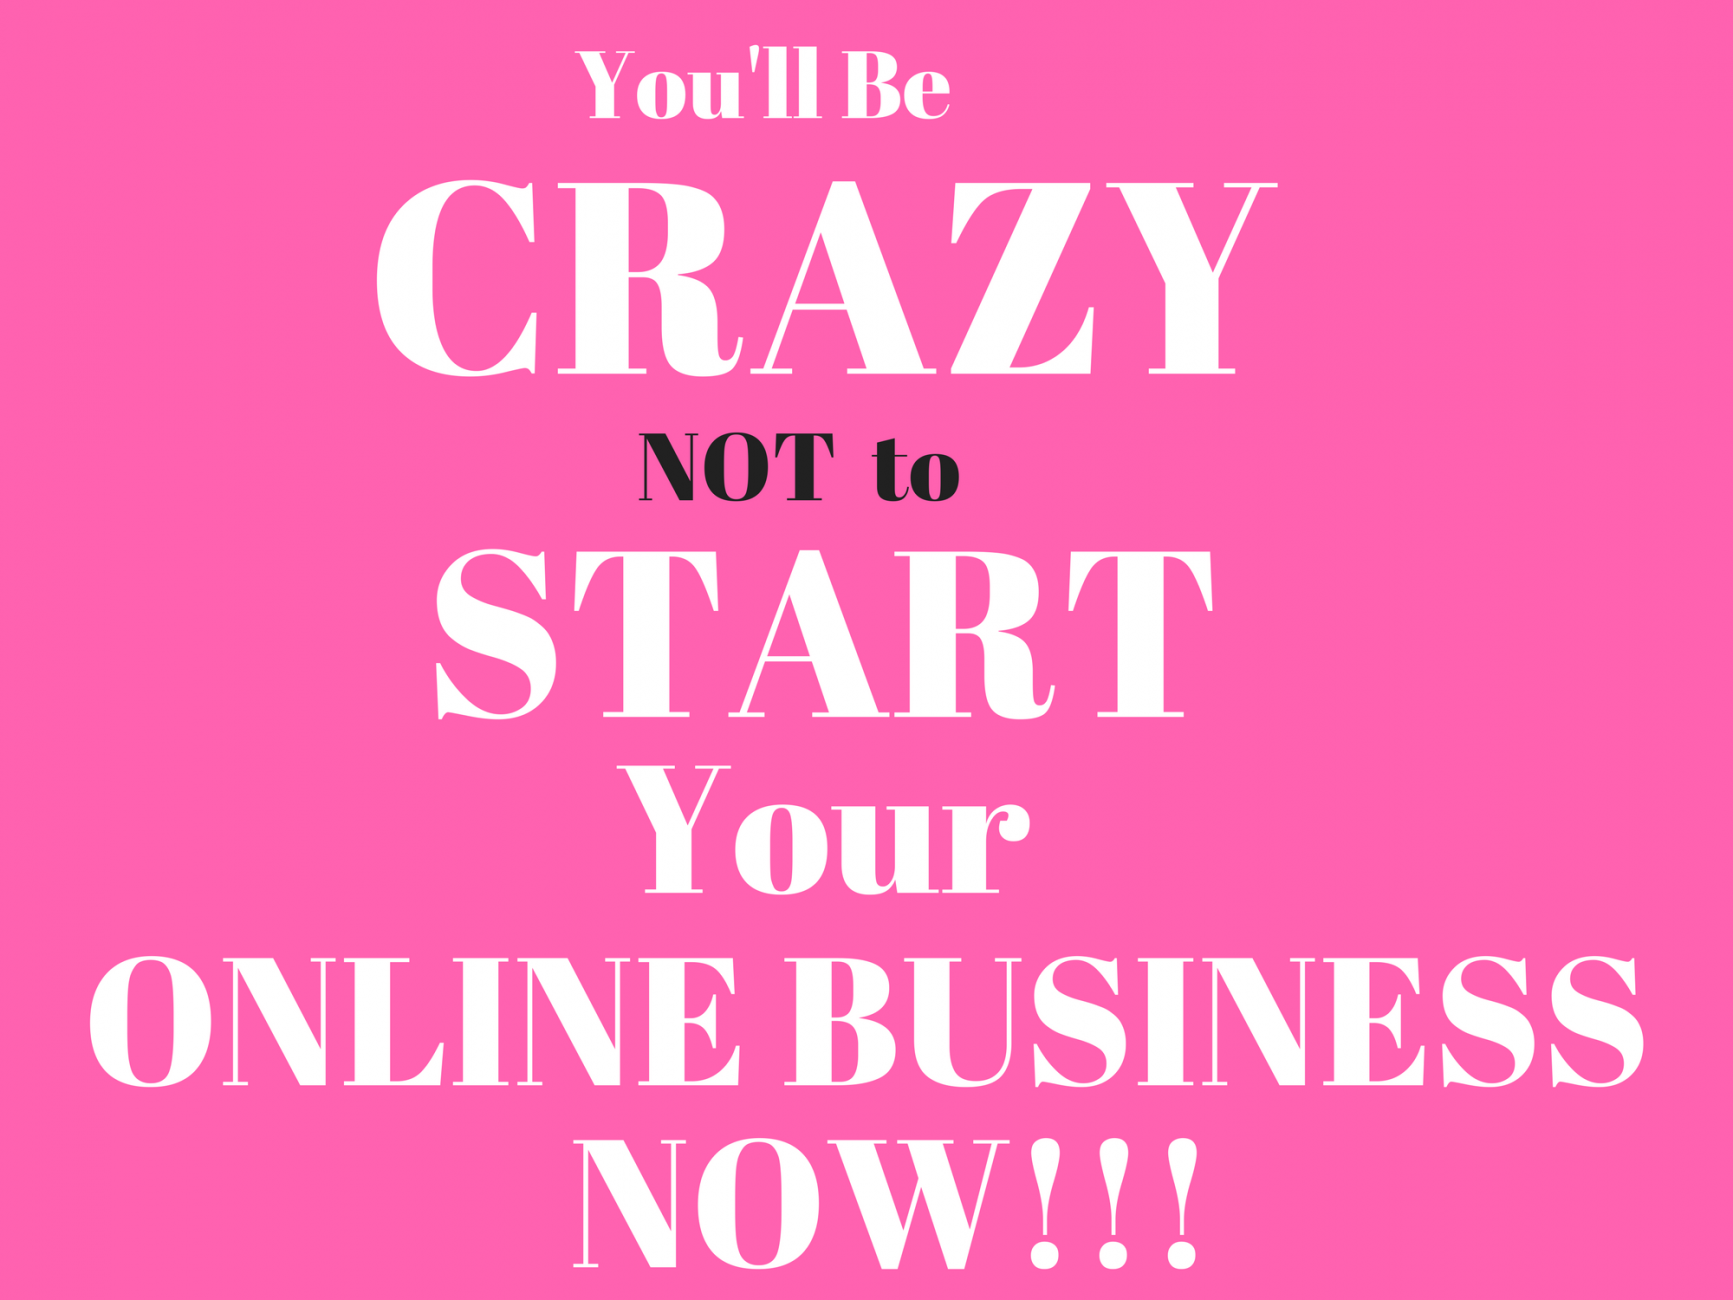 You'll Be CRAZY Not to START Your ONLINE BUSINESS Now!!!